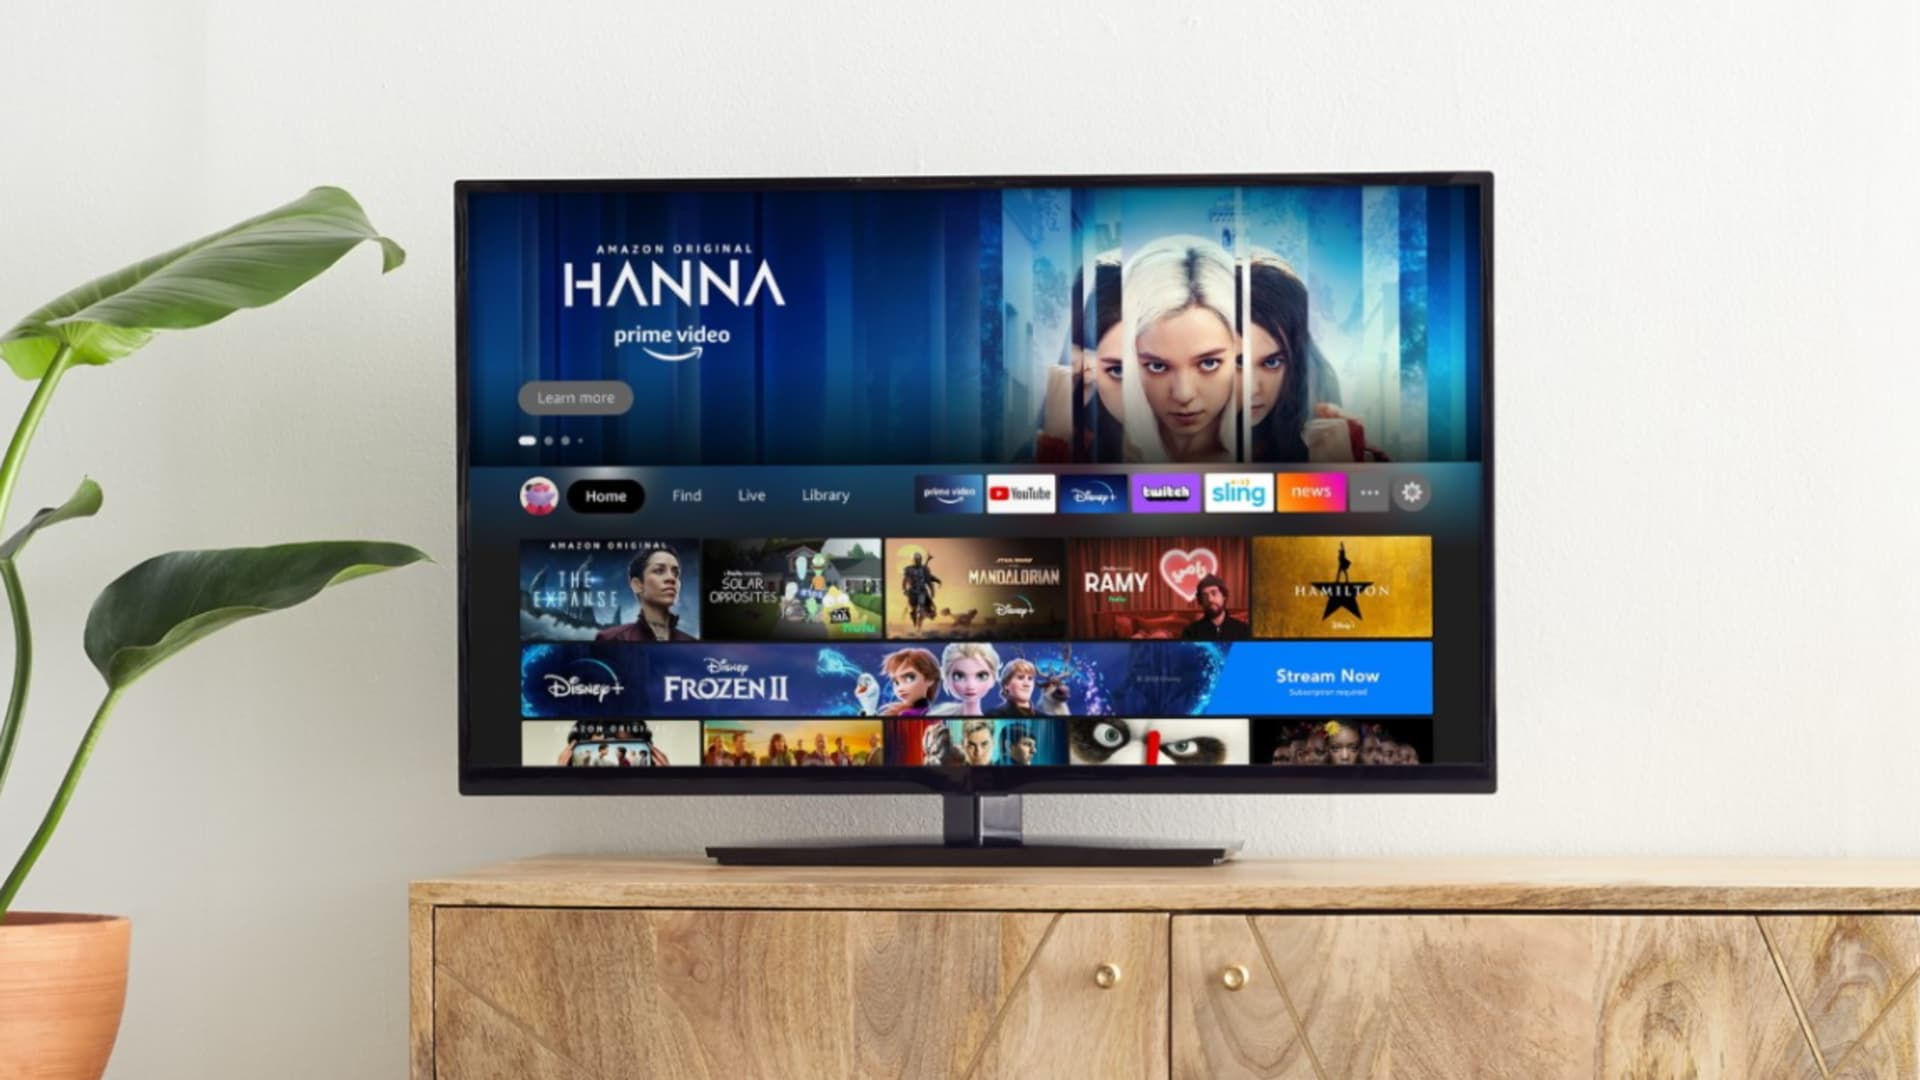 The new Amazon Fire TV interface, which includes user profiles.